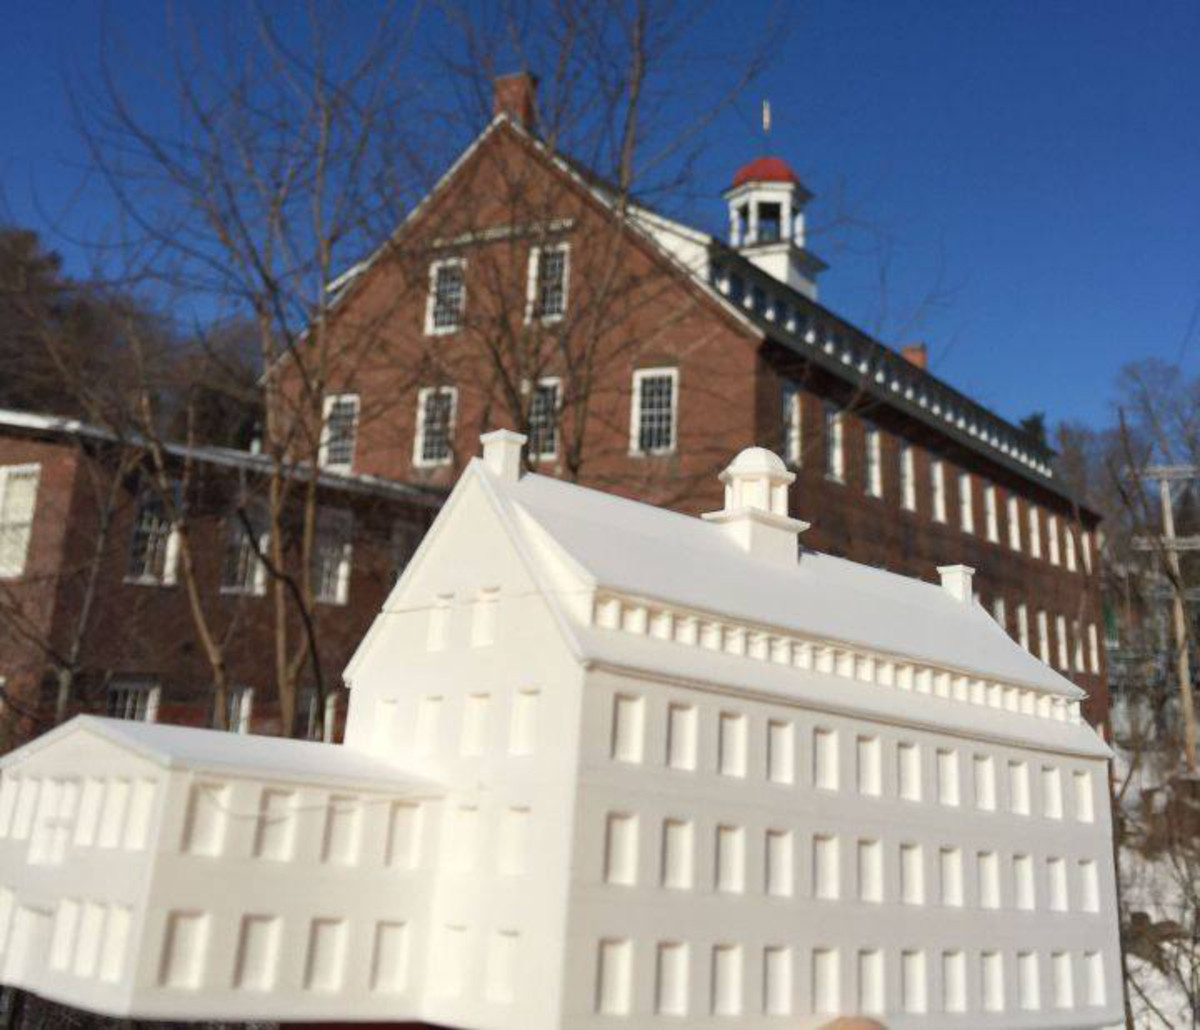 Students in the Windsor, Vermont High School Technical Education Class prepared this 3d model of the American Precision Museum in 2015.  They learned about history and architectural design with this project.  The museum is housed in the historic Robbins, Kendall and Lawrence Armory. Photo: Courtesy American Precision Museum